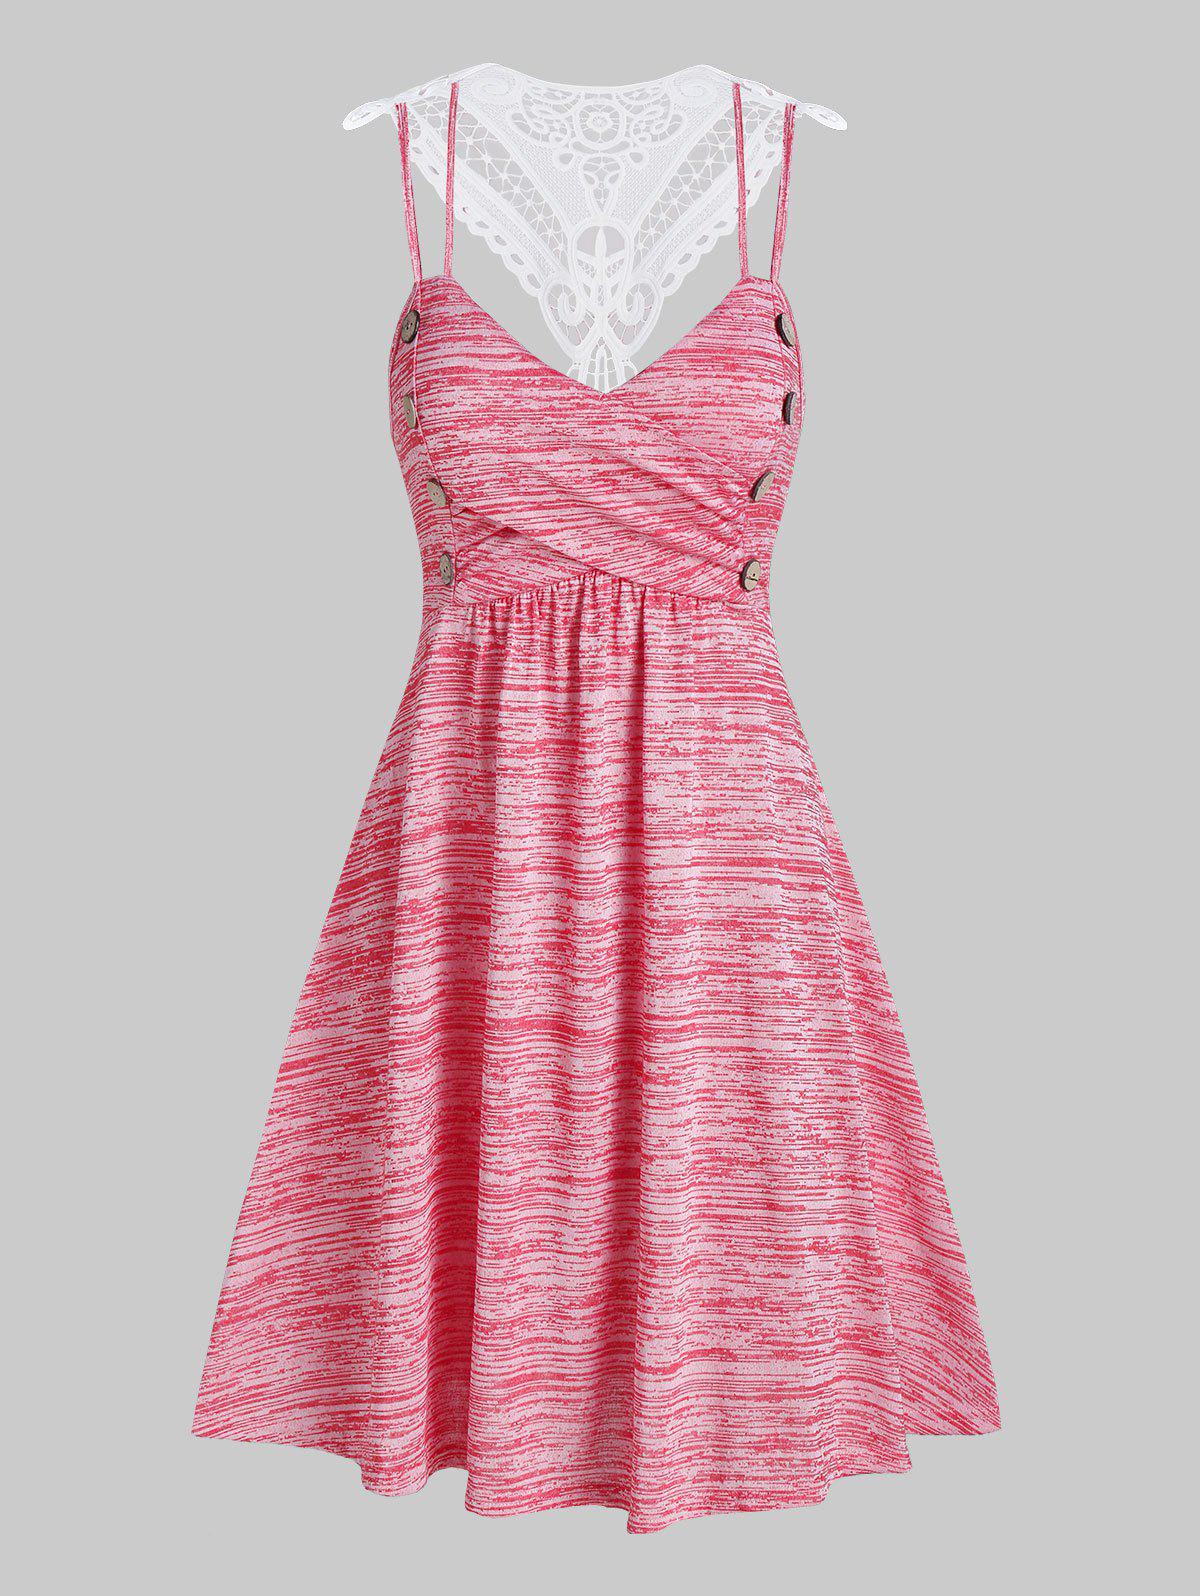 Lace Panel Button Fit And Flare Dress - PINK ROSE 3XL